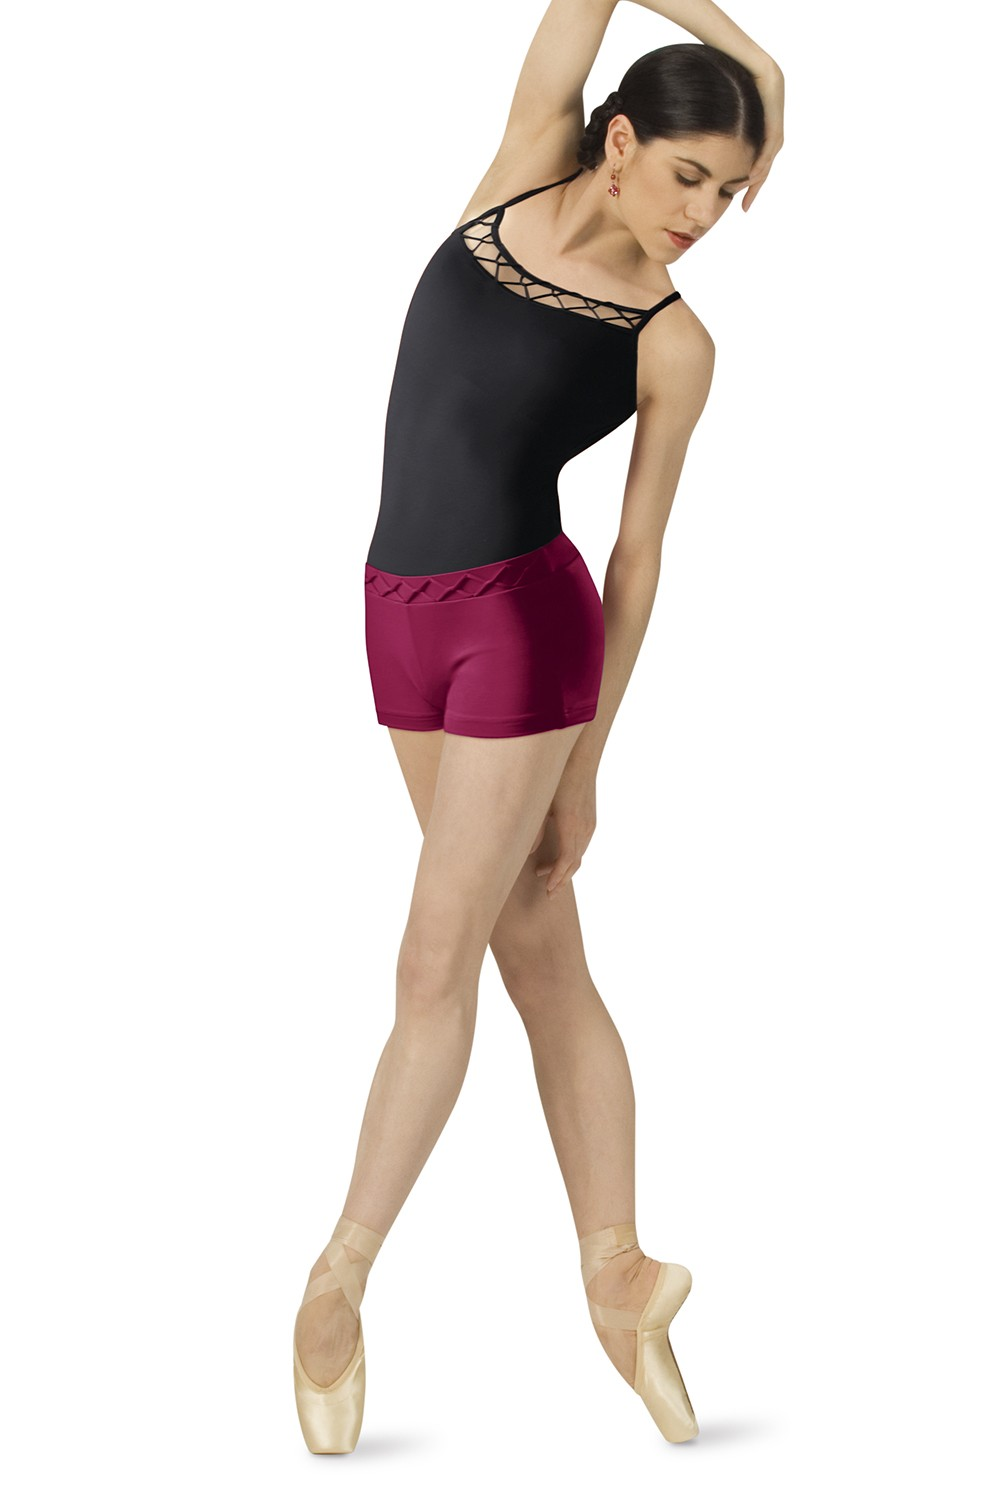 Rouleaux Waist Short Women's Dance Shorts